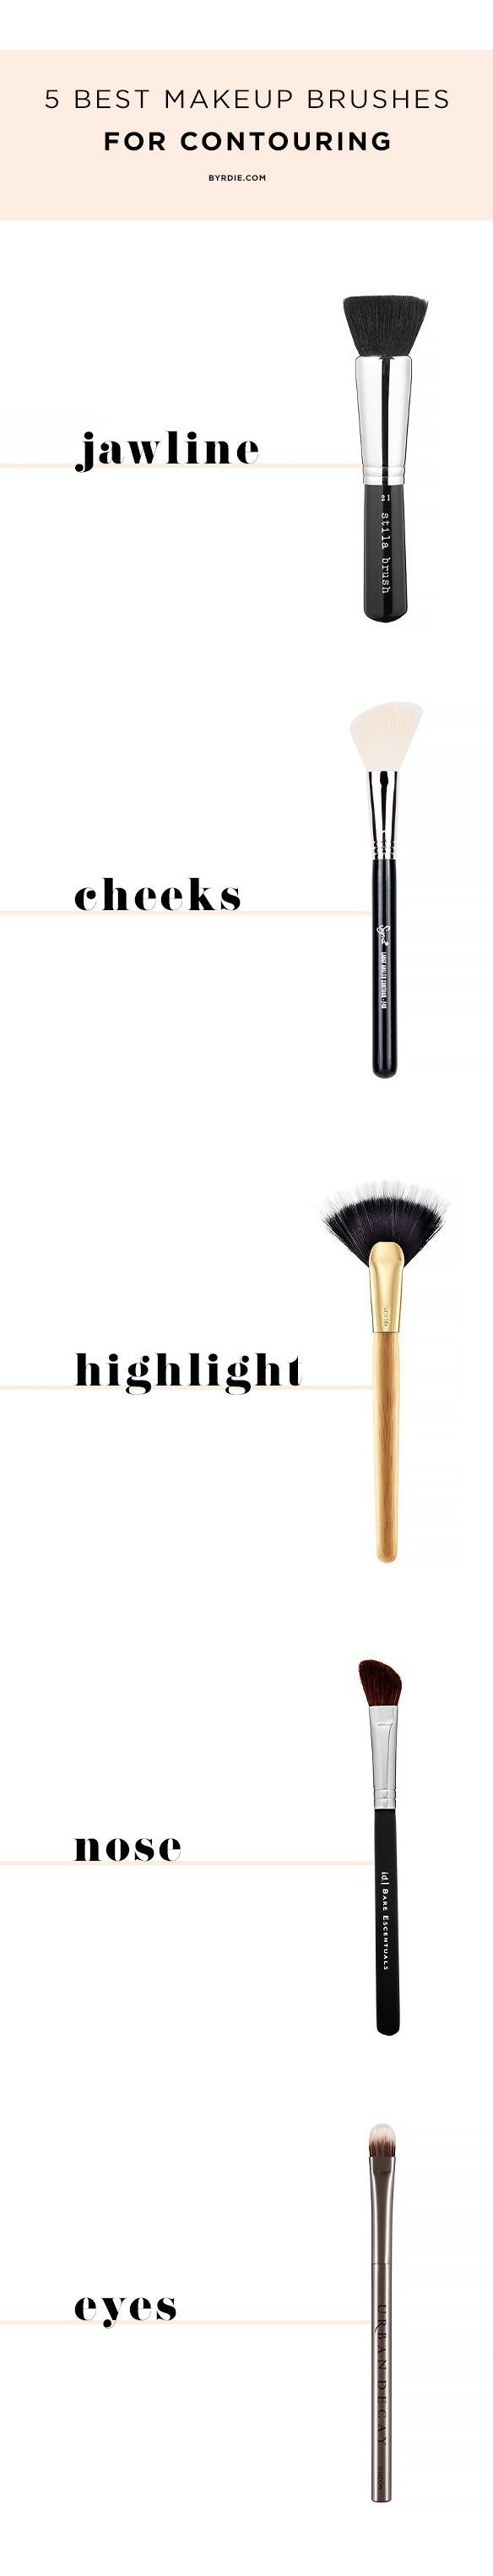 The 5 Best Makeup Brushes For Contouring Best Makeup Brushes Essential Makeup Brushes Best Makeup Products